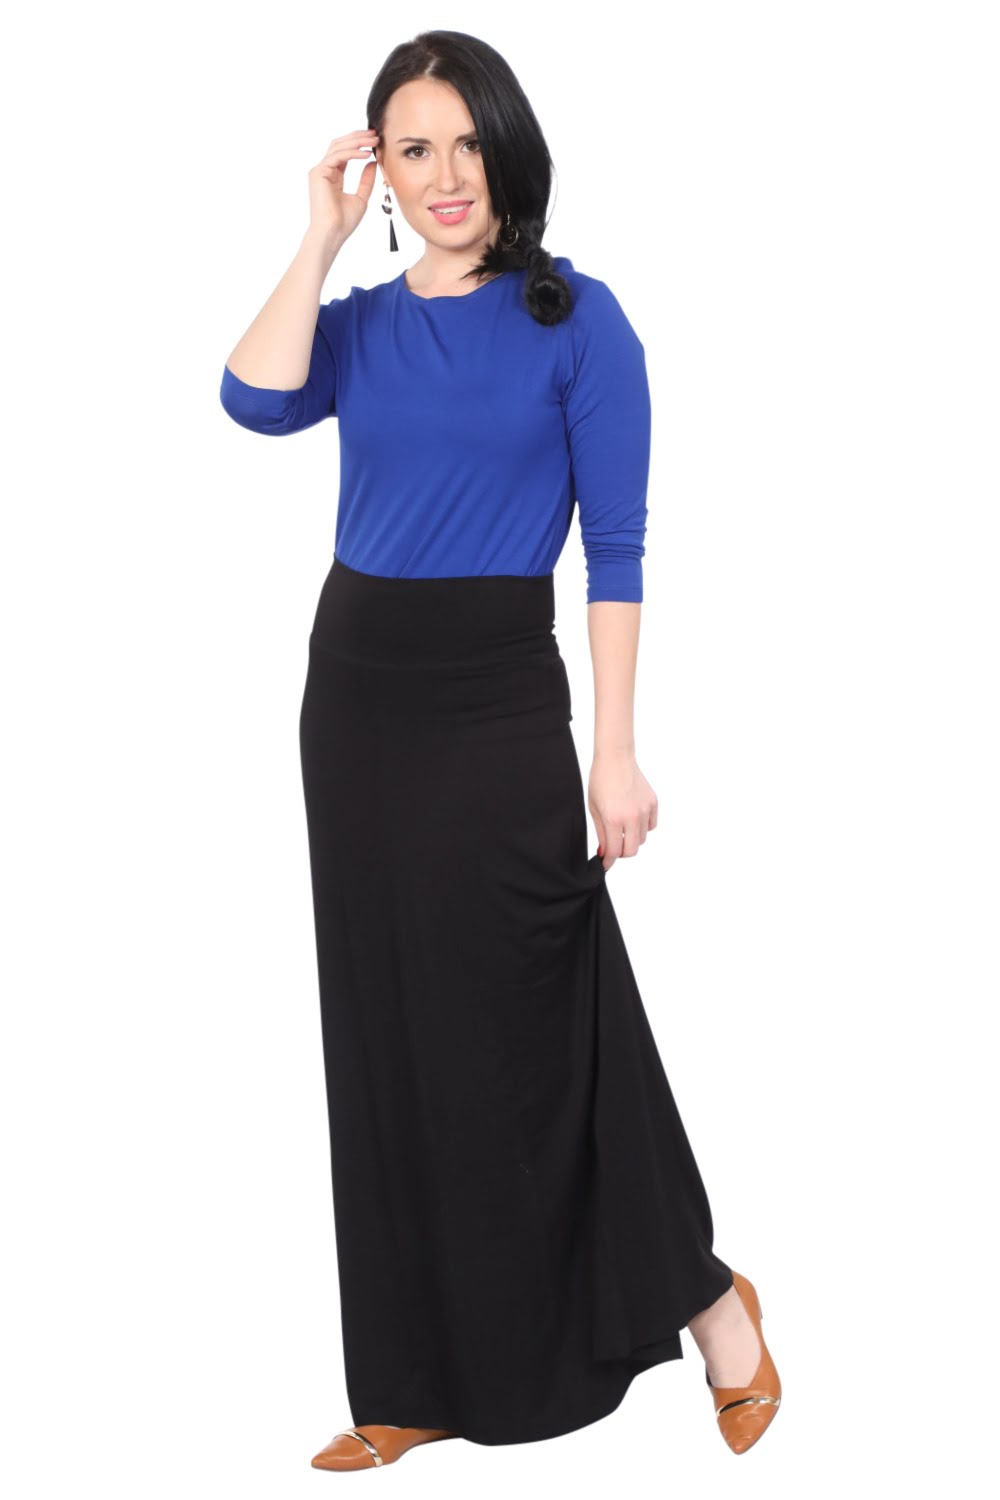 58464c9df8d8 Modest Skirts for Women - Long and Knee Length Skirts